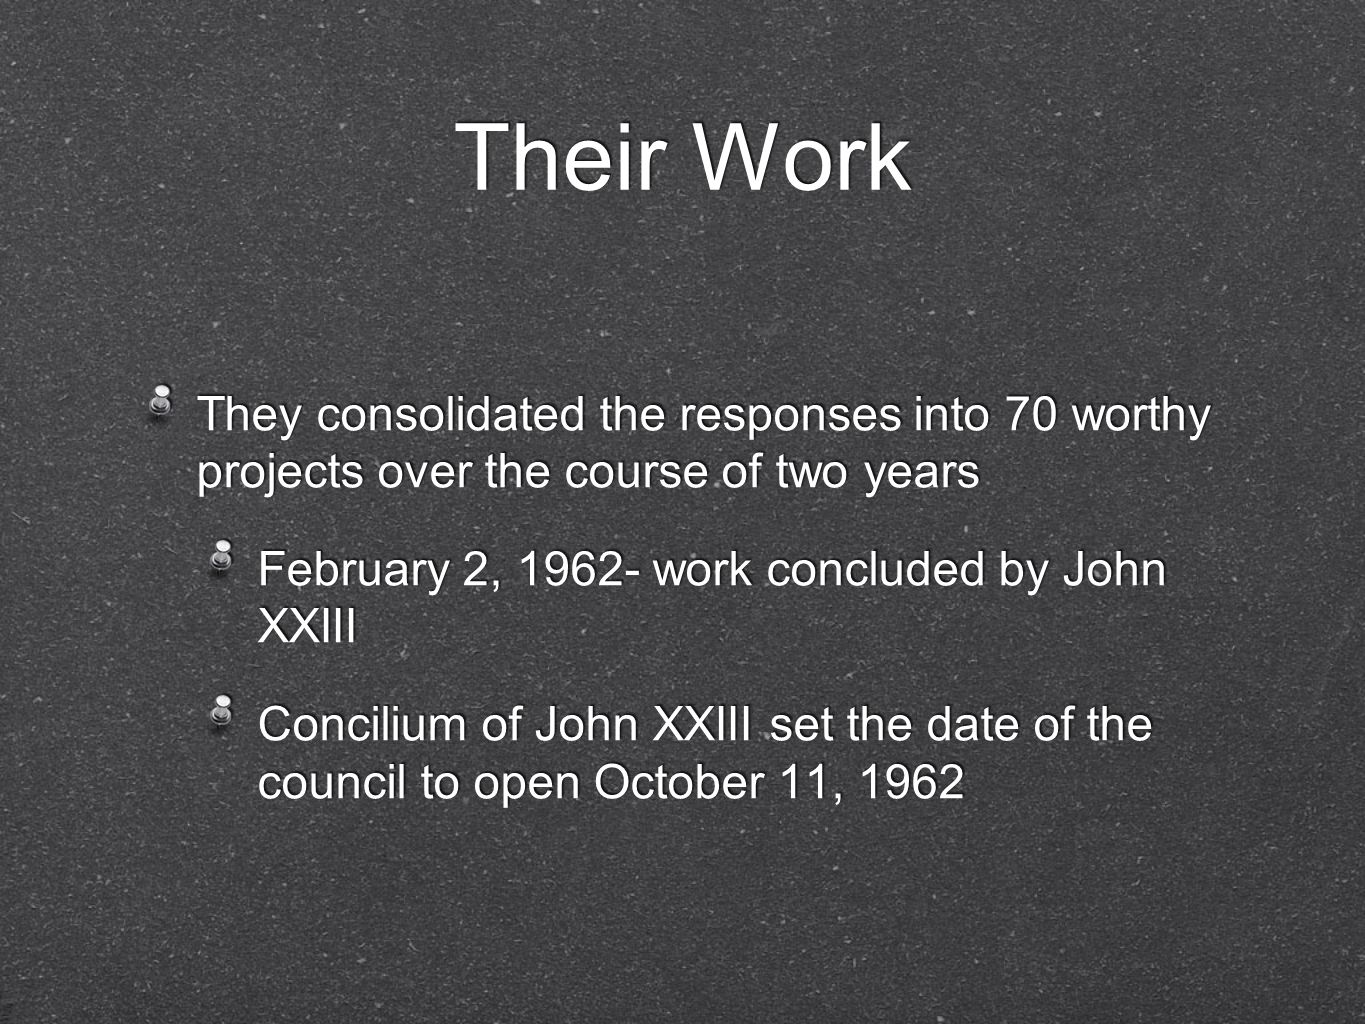 Their Work They consolidated the responses into 70 worthy projects over the course of two years. February 2, work concluded by John XXIII.